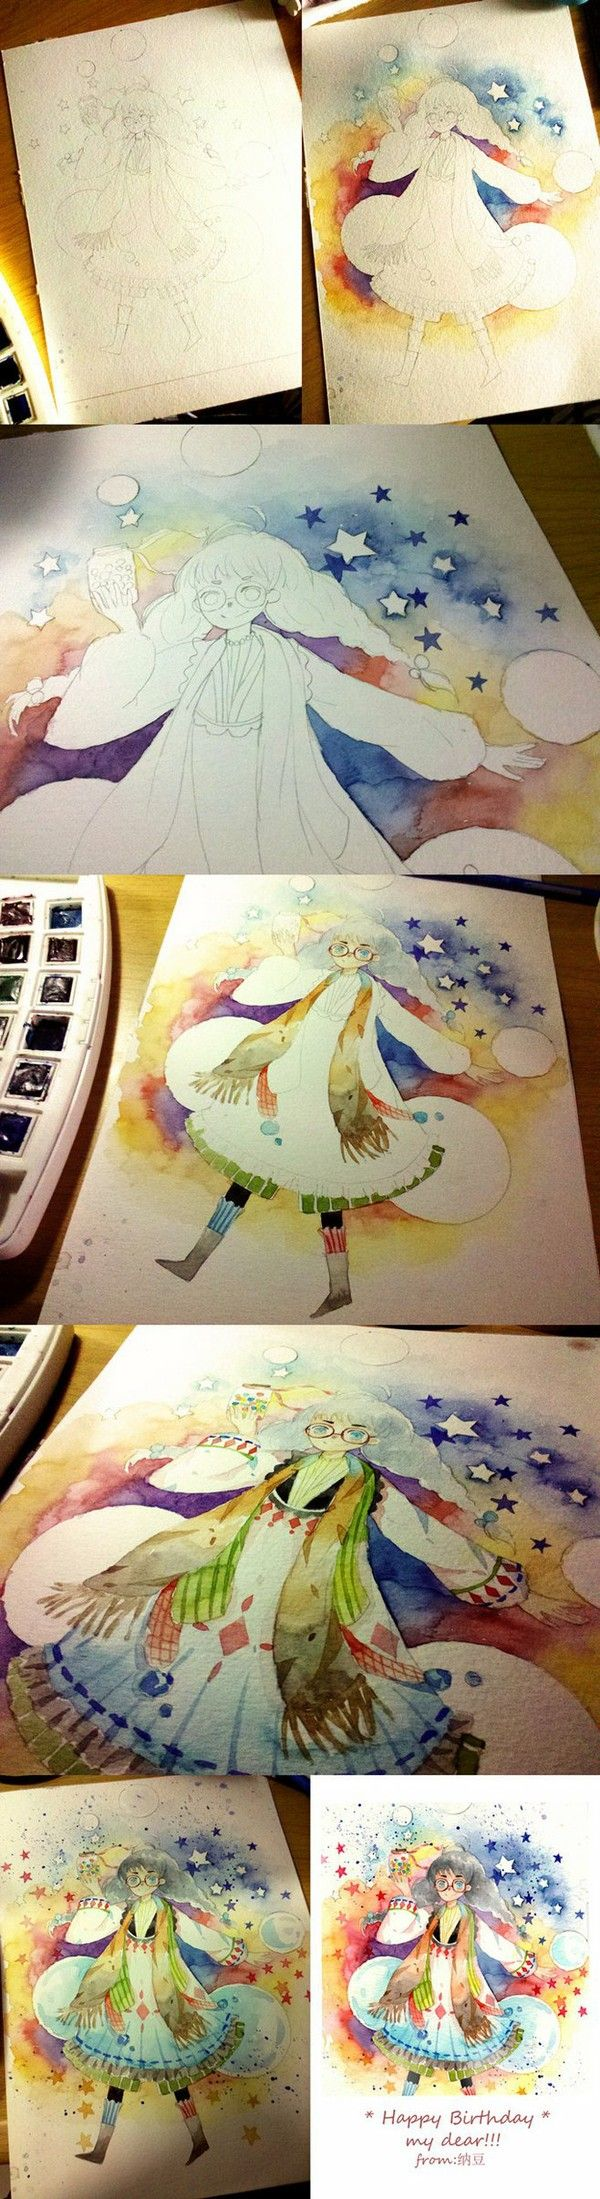 Stars and a girl walking, Watercolor painting idea. Cool background colors and design.